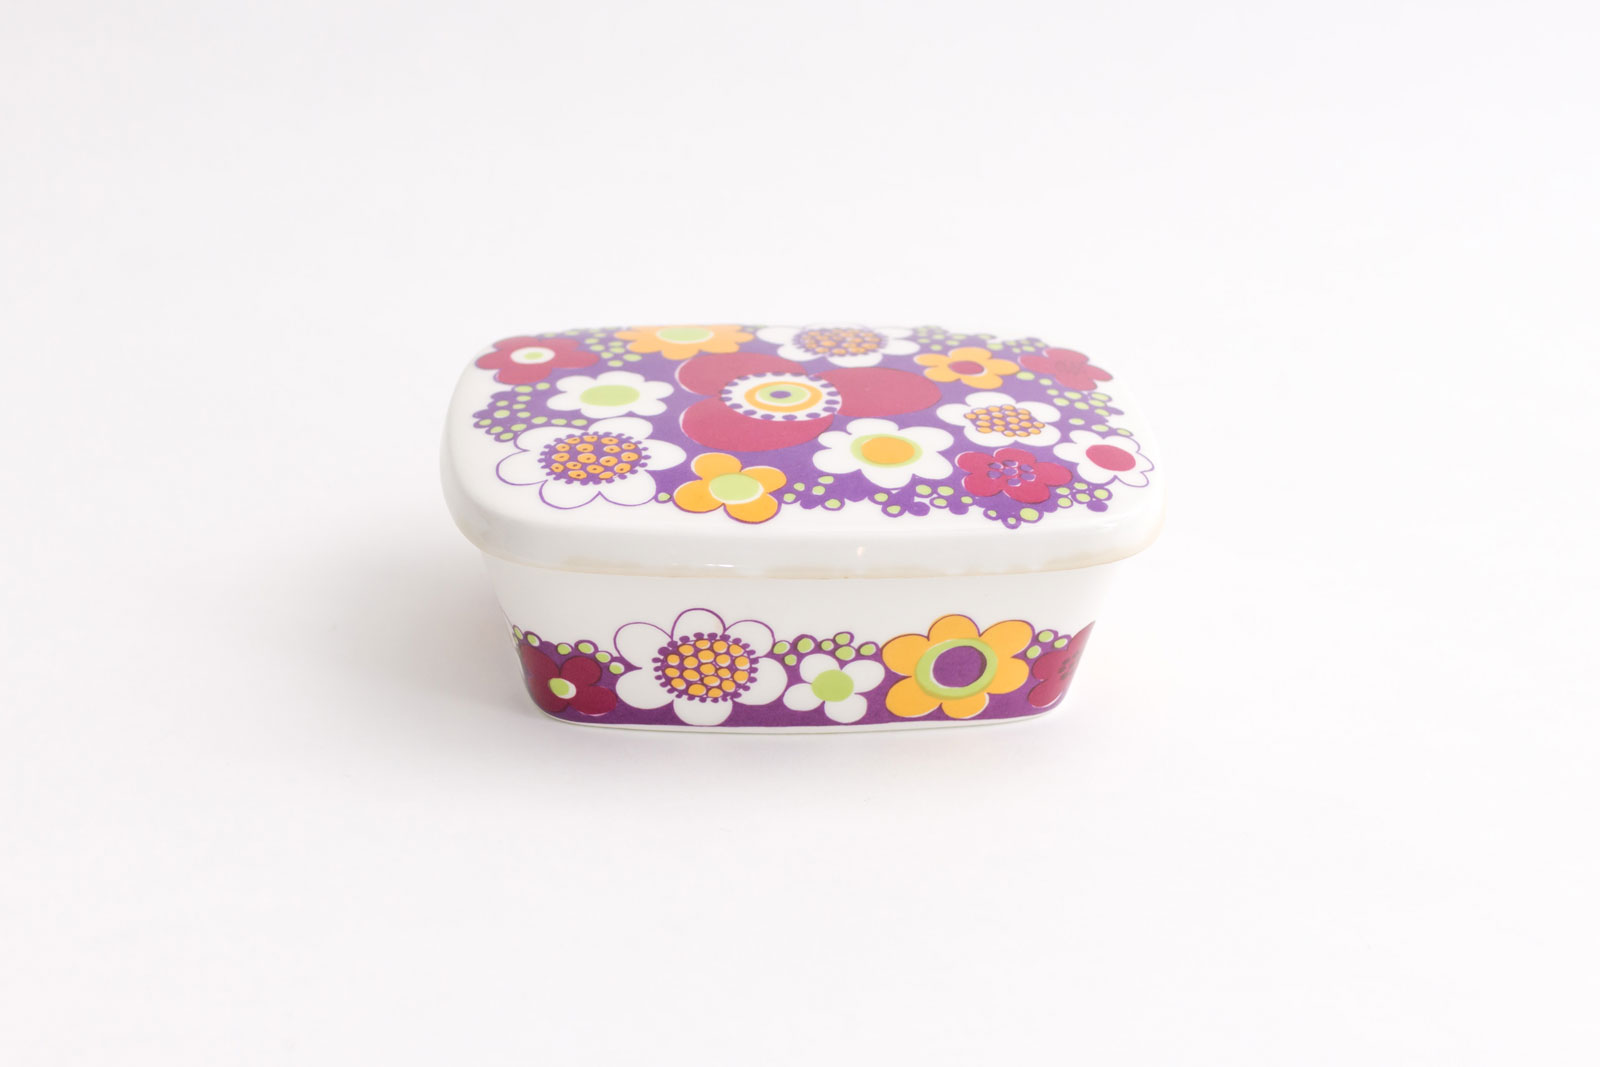 Butter Box designed by Turi Gramstad Oliver